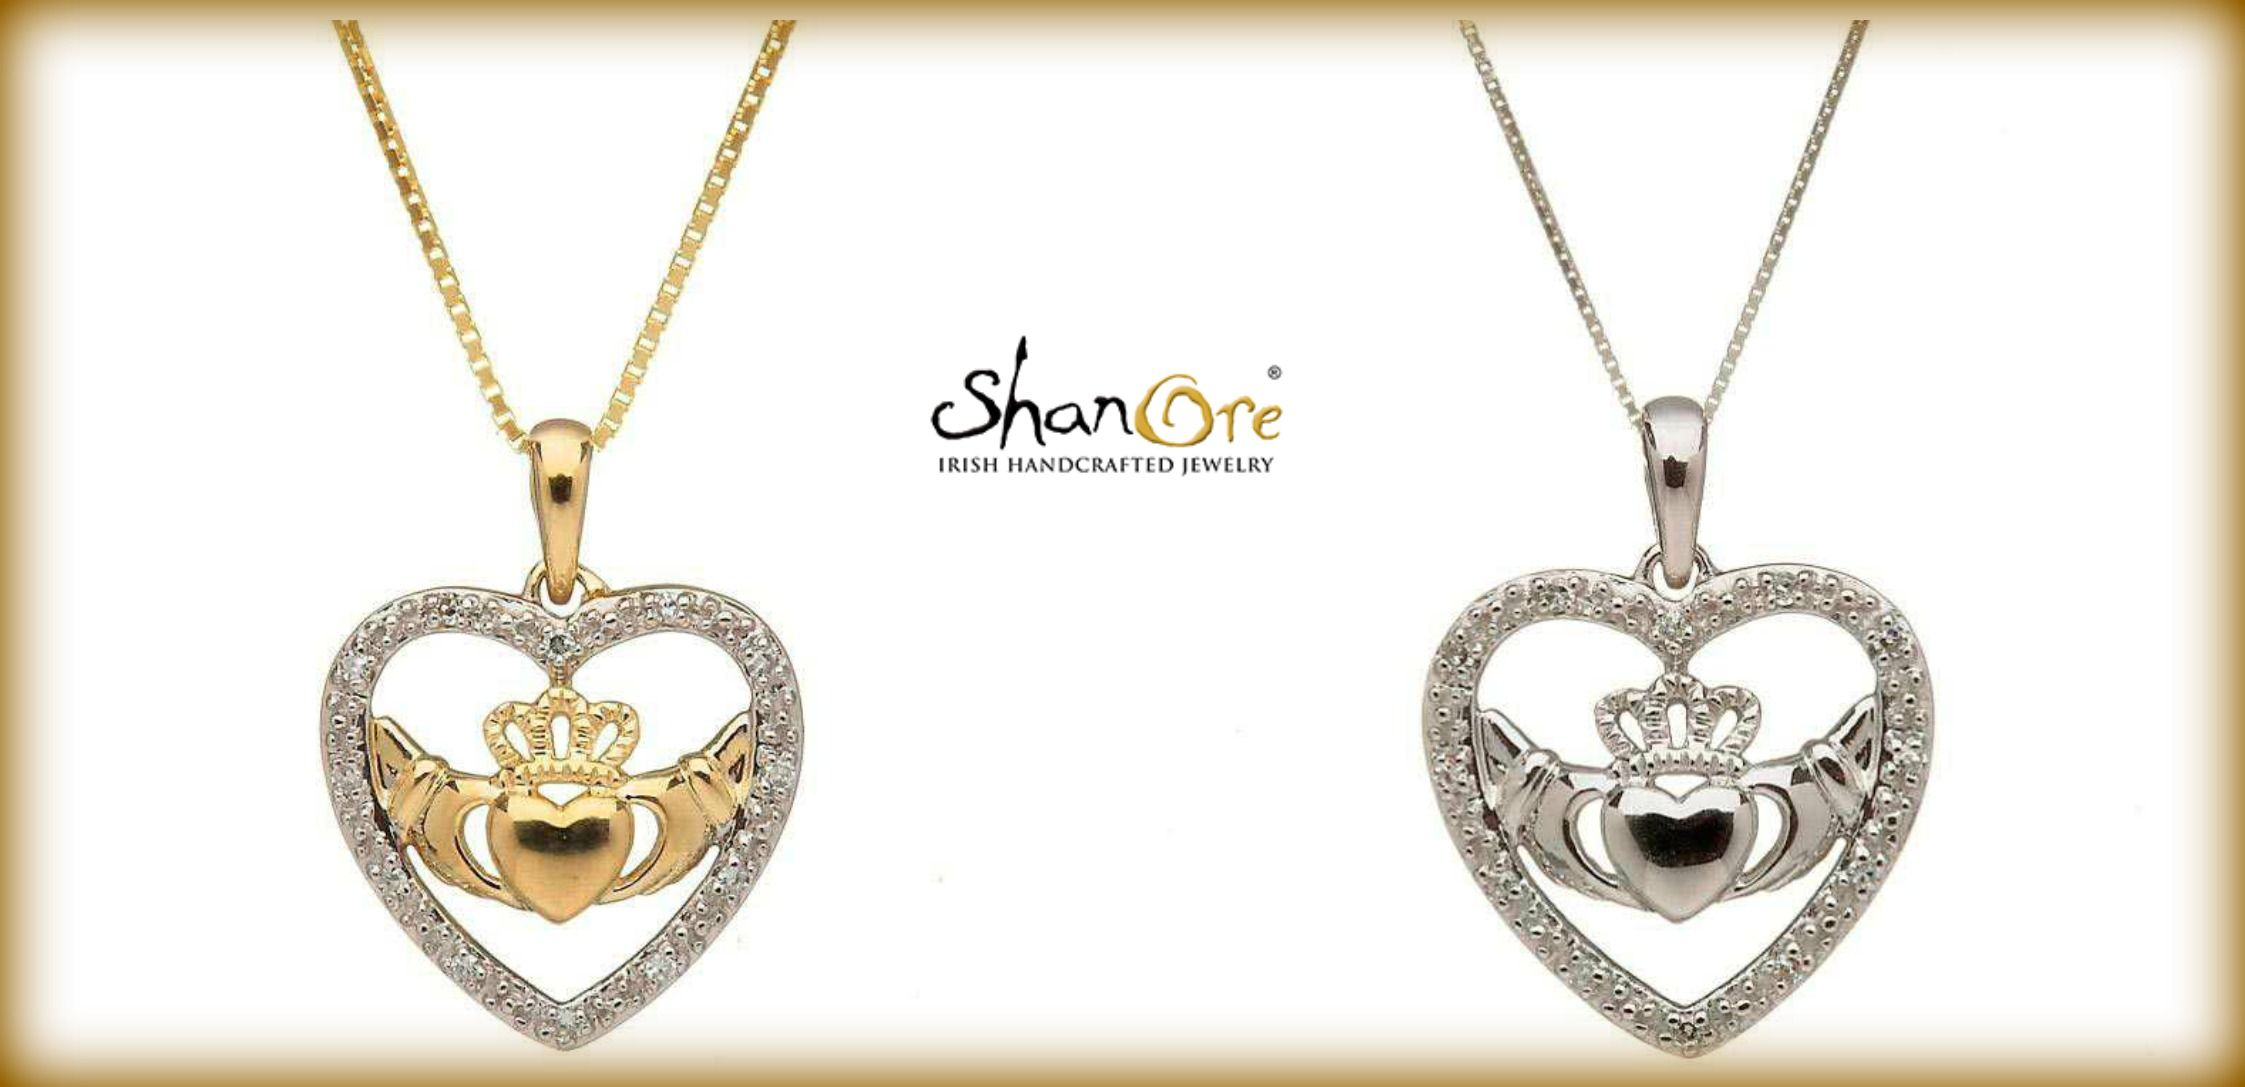 Shanore Gold and silver claddagh pendants #irish #celtic #jewelry #claddagh #shanore